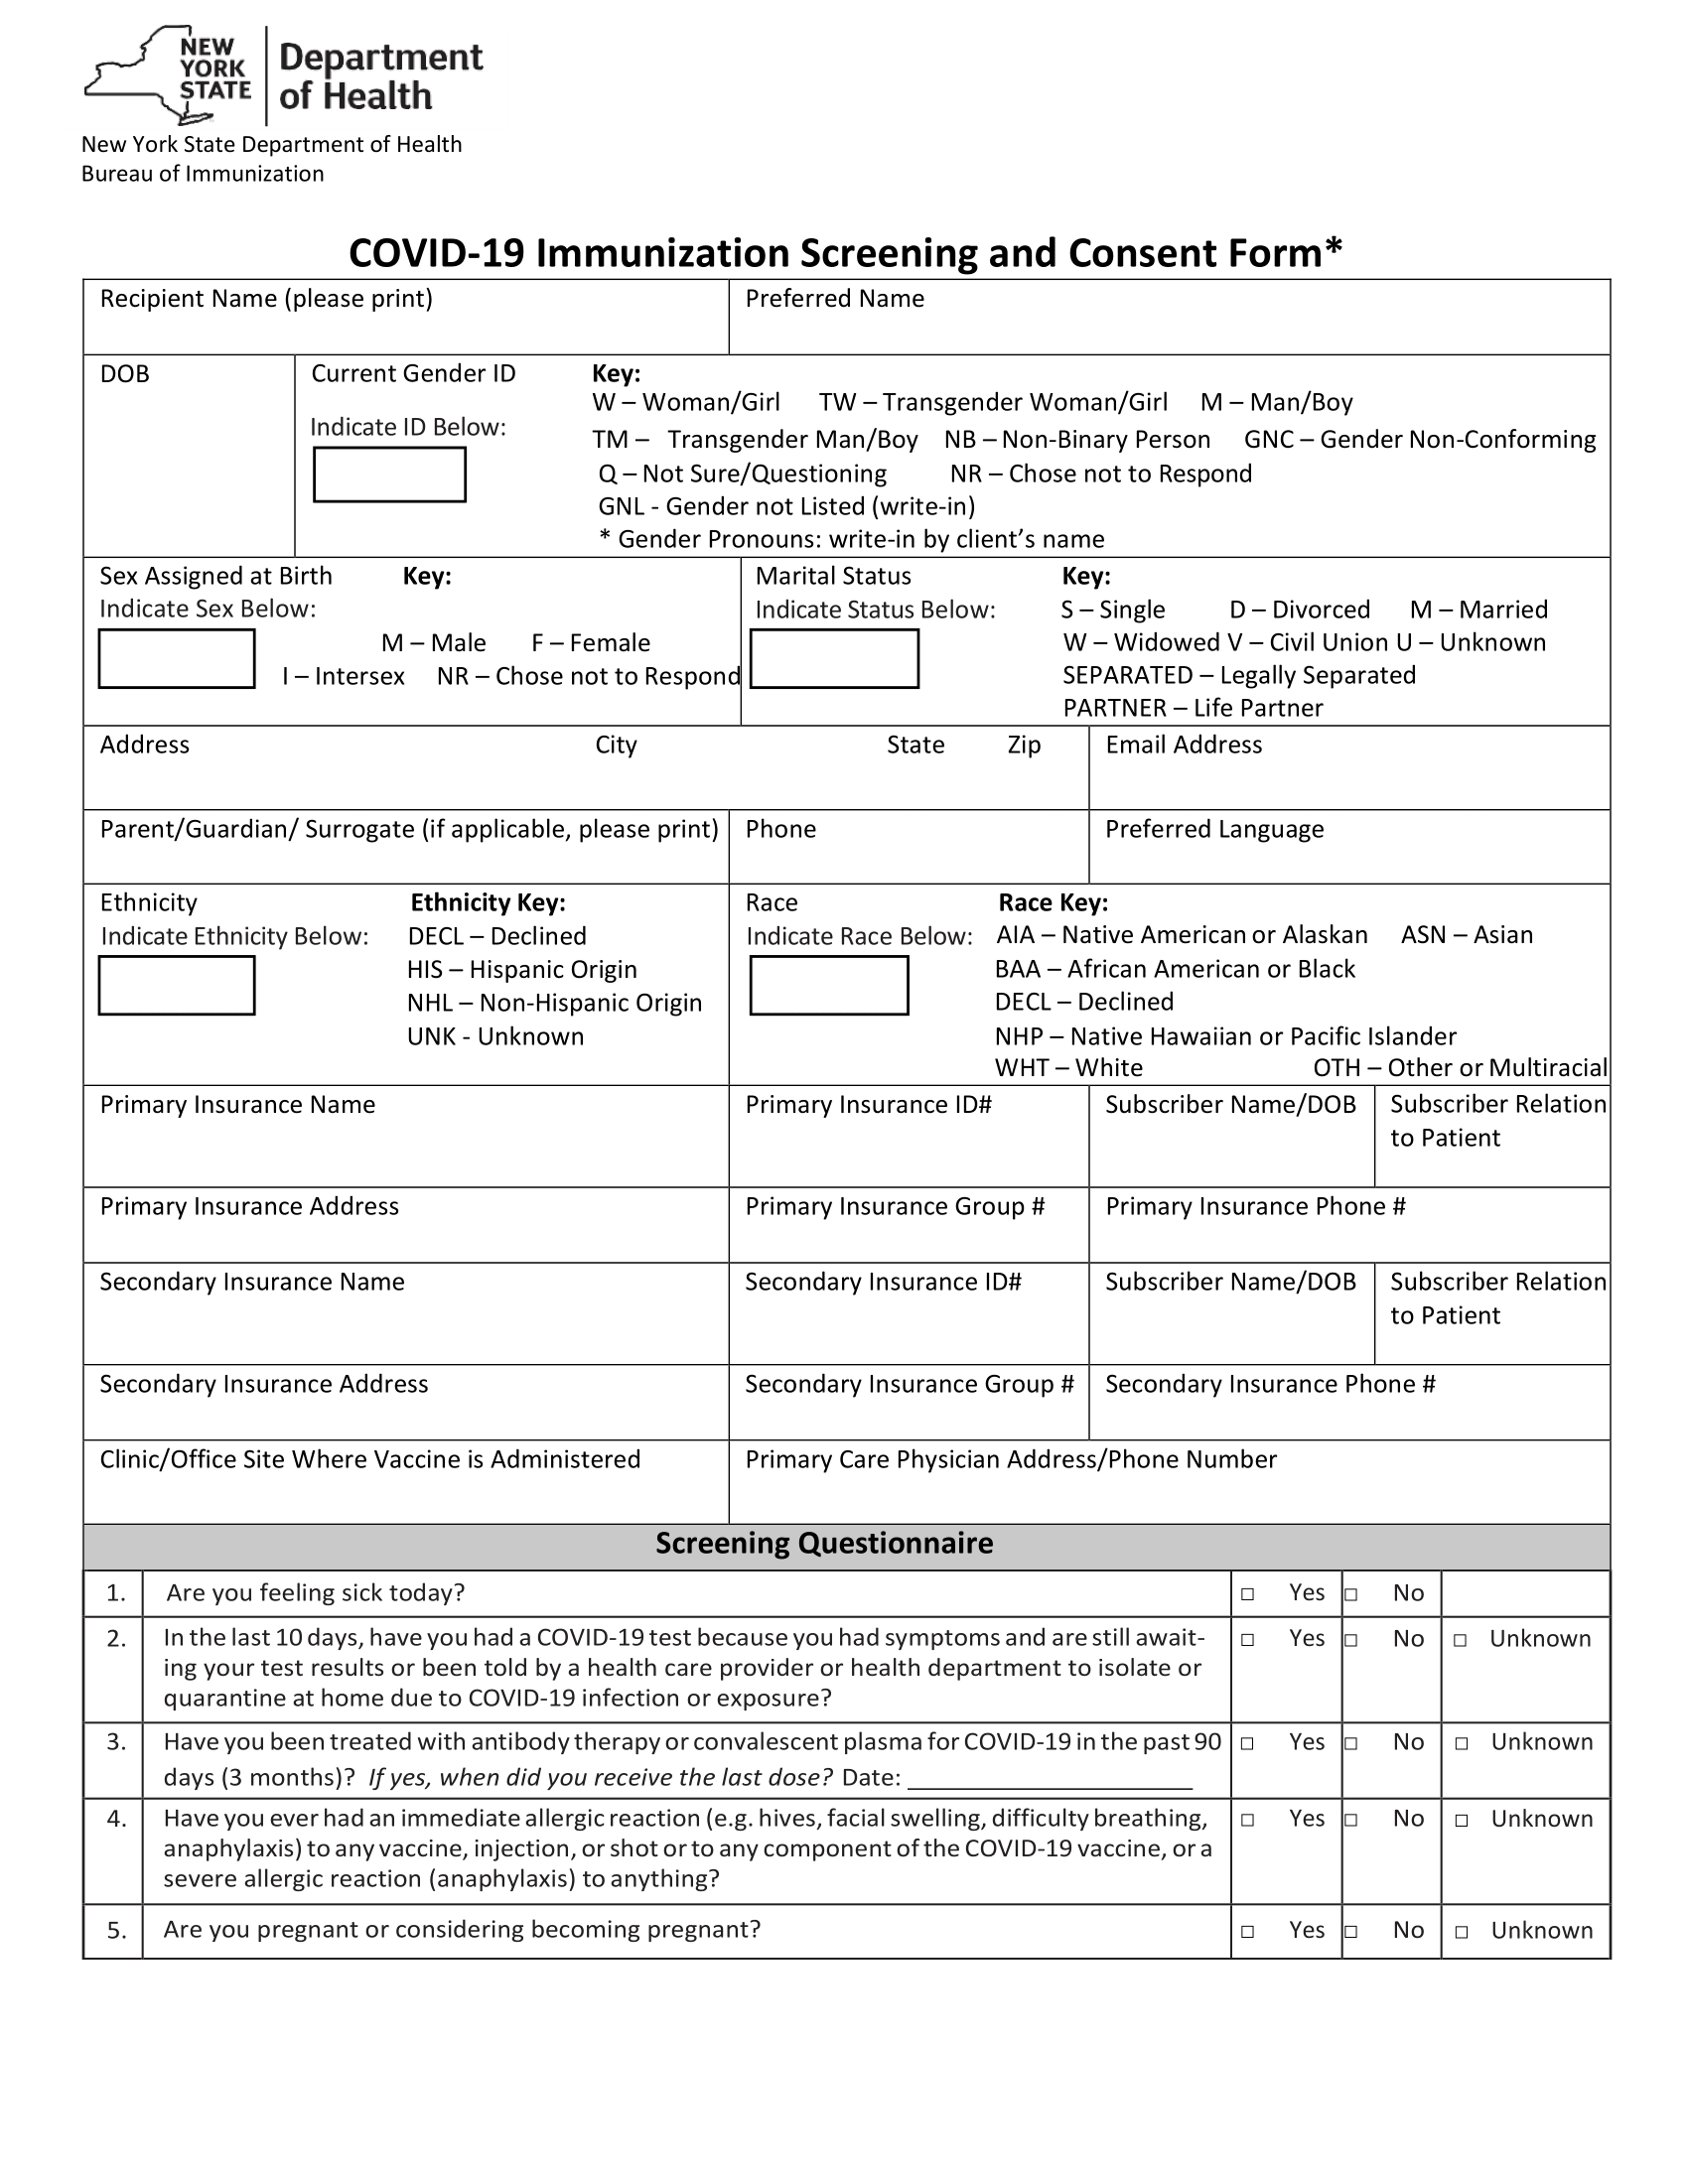 Vaccine Family Letter with Consent Form-3